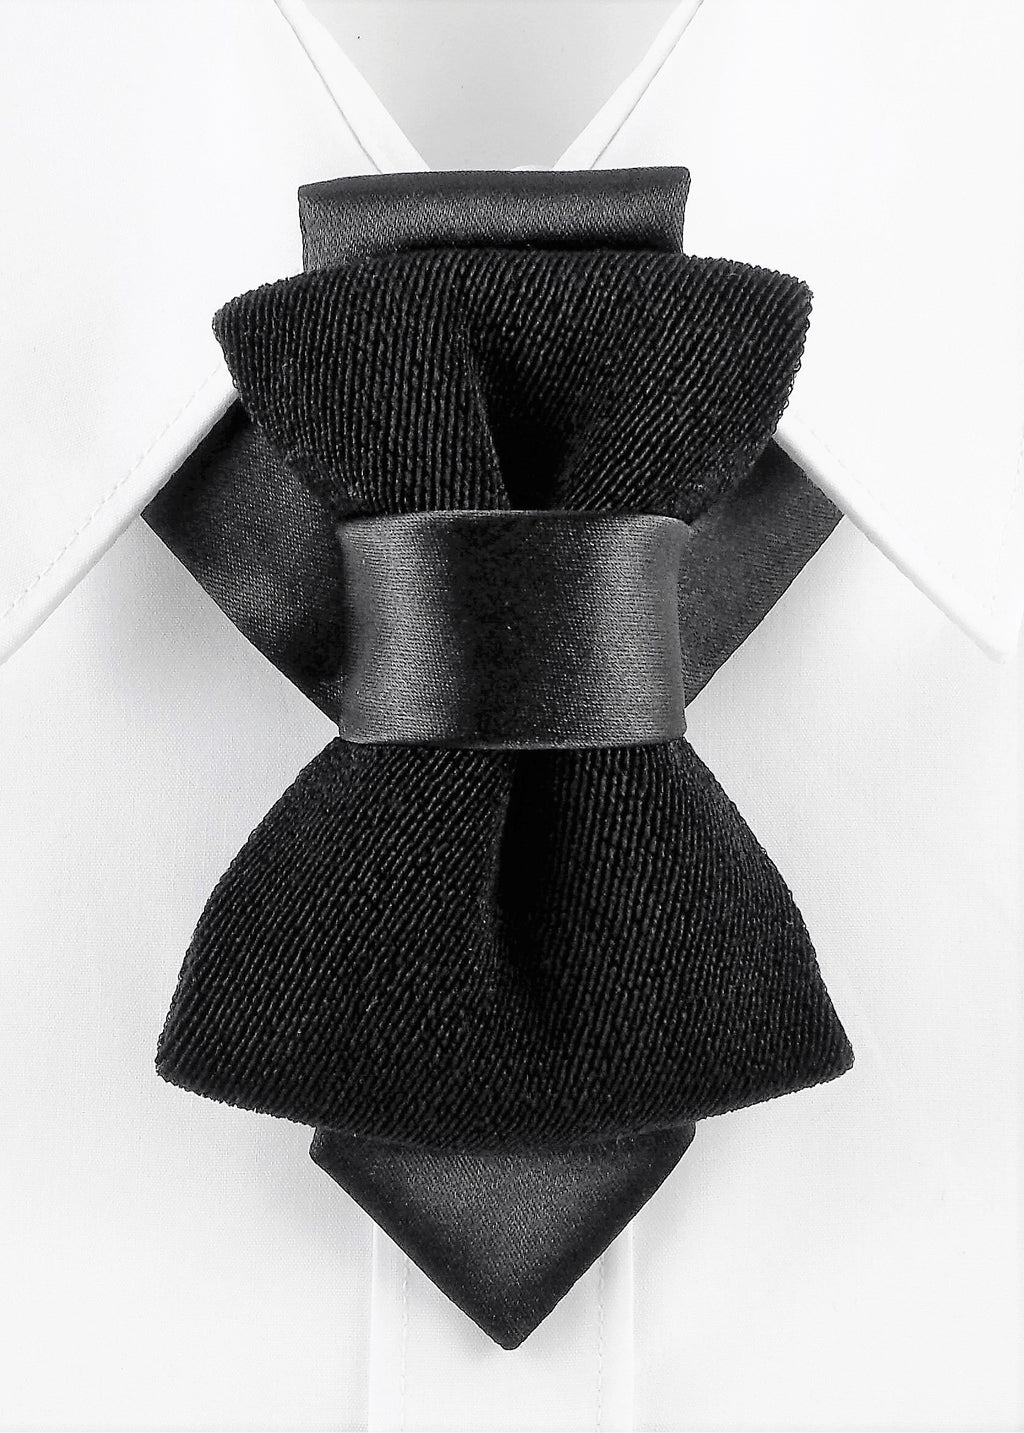 Bow Tie, Tie for wedding suite BLACK VELVET hopper tie Bow tie